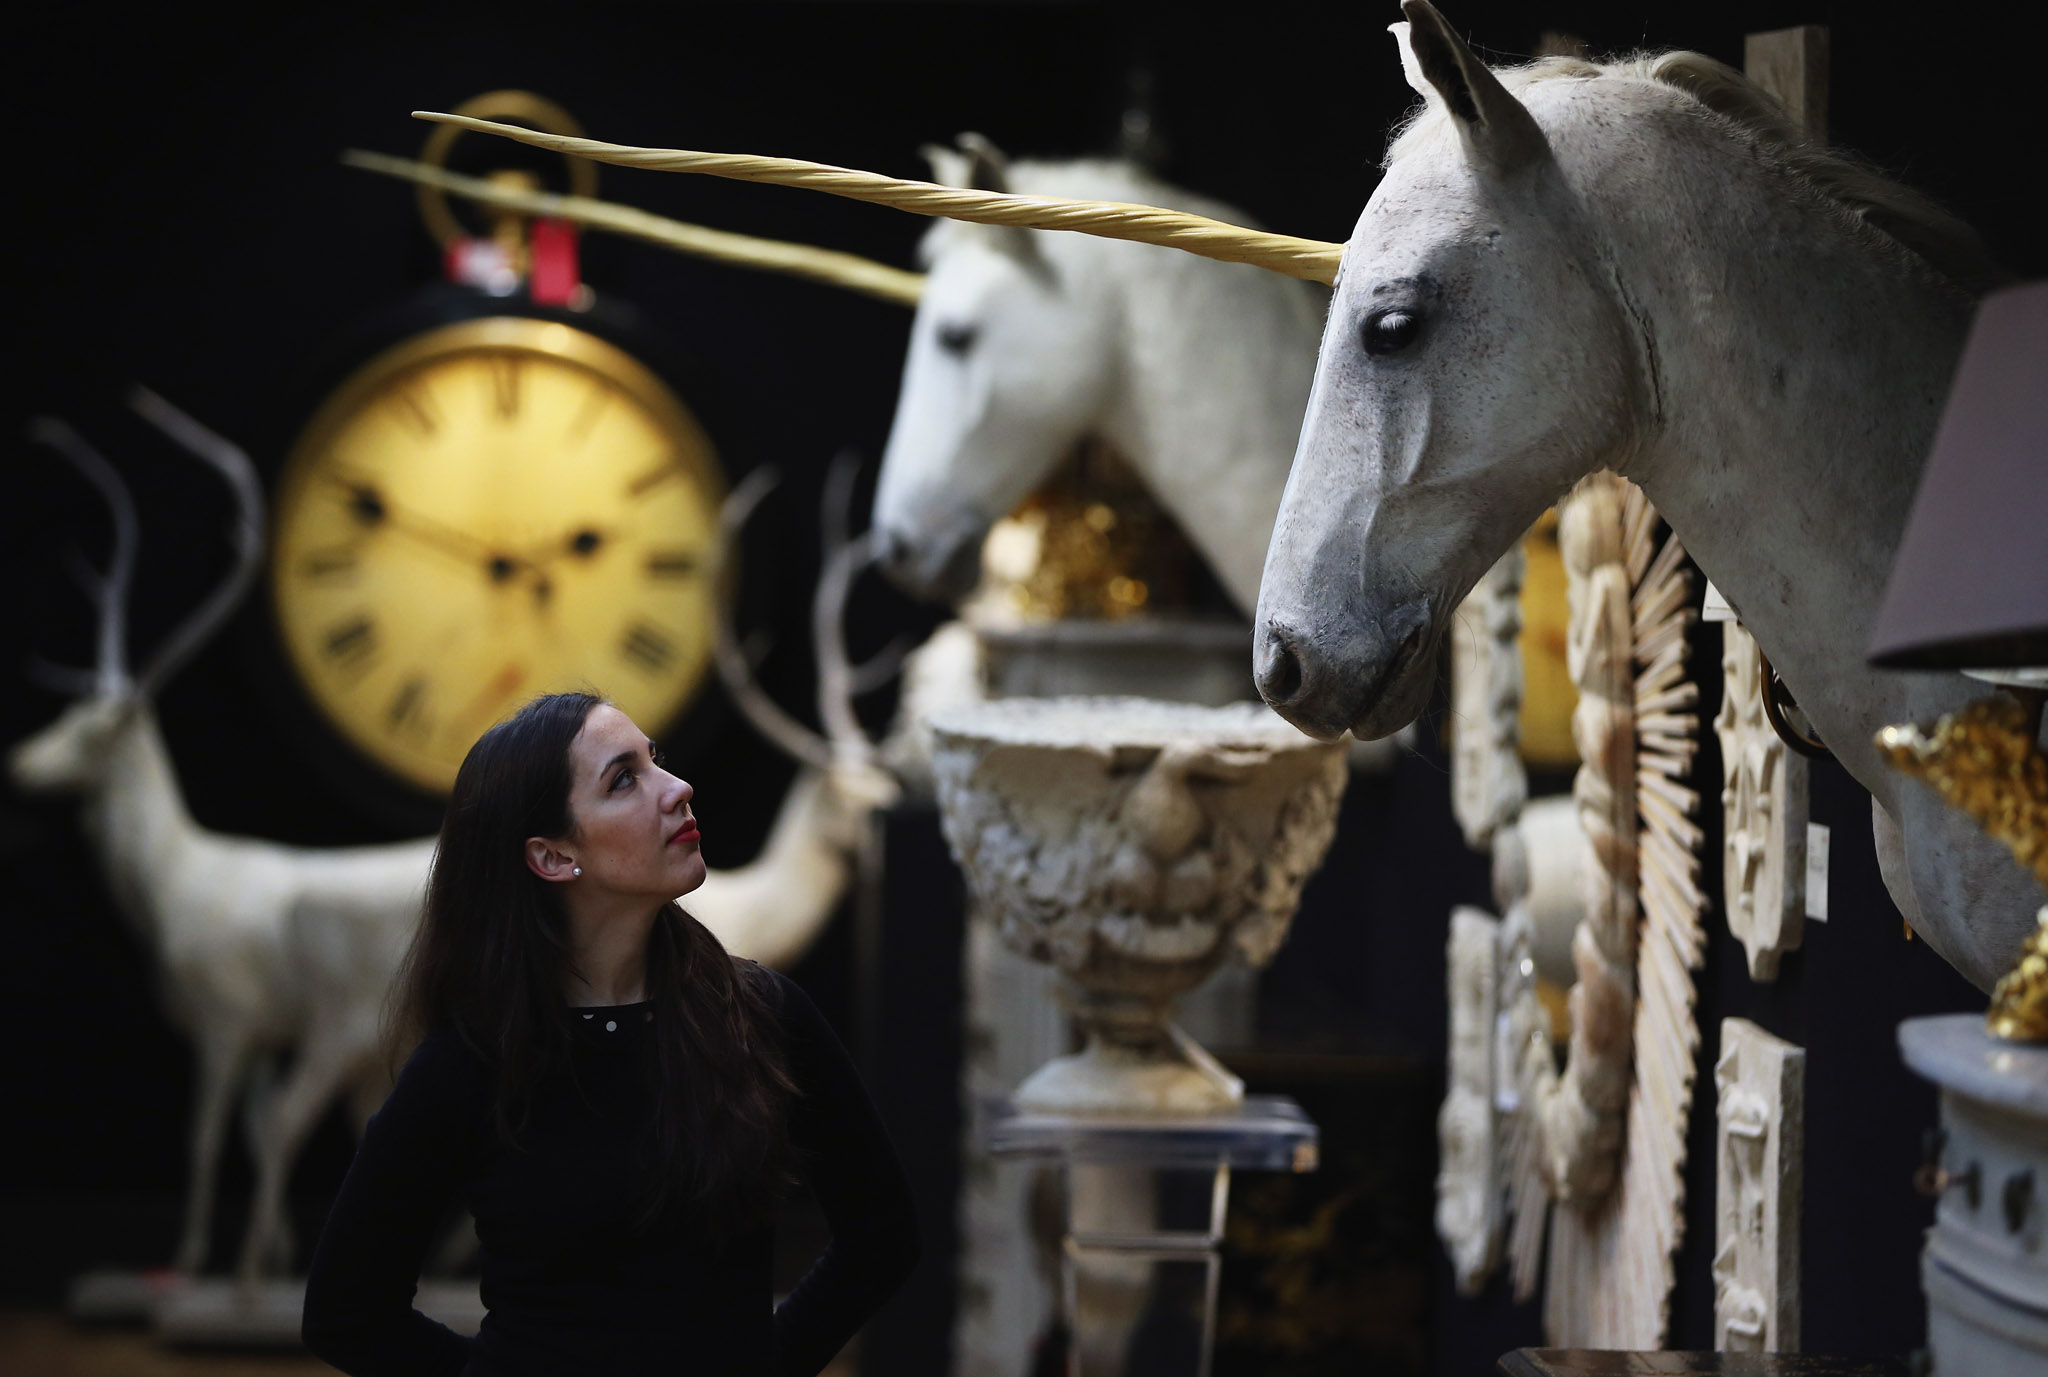 A Christie's employee poses in front of one of two 'Unicorn Heads' at Christie's auction house on in London, England. The items make up part of the Les Trois Garcons' collection which will be sold at auction on March 5, 2014. The collection is made up of 380 lots from the owners of 'Les Trois Garcons' celebrity restaurant in Shoreditch and their homes.